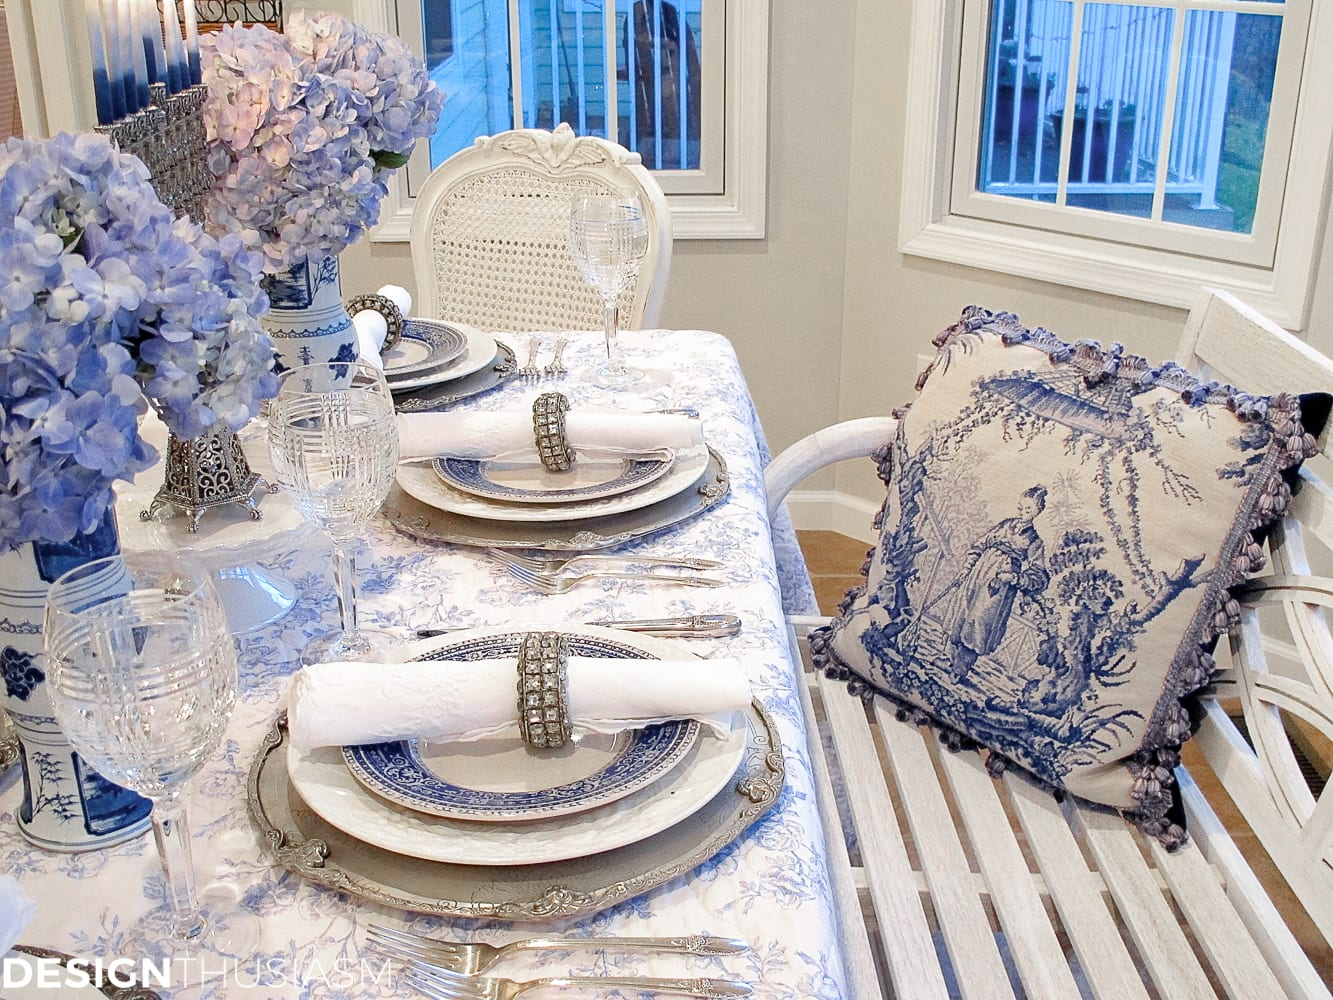 French Toile in a Blue and White Holiday Table Setting - Designthusiasm.com : french table setting - pezcame.com